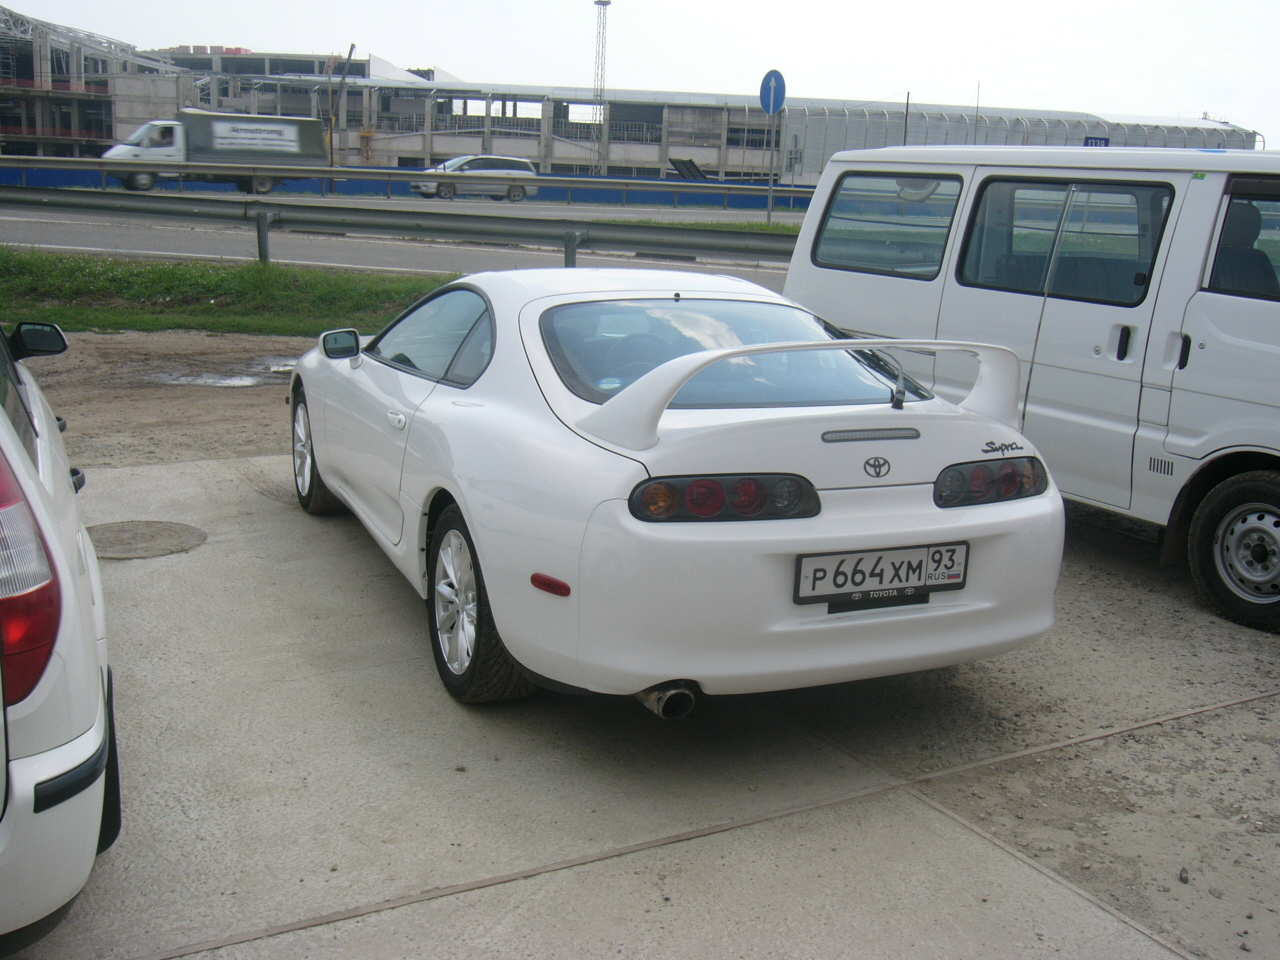 2002 toyota supra pictures gasoline fr or rr. Black Bedroom Furniture Sets. Home Design Ideas